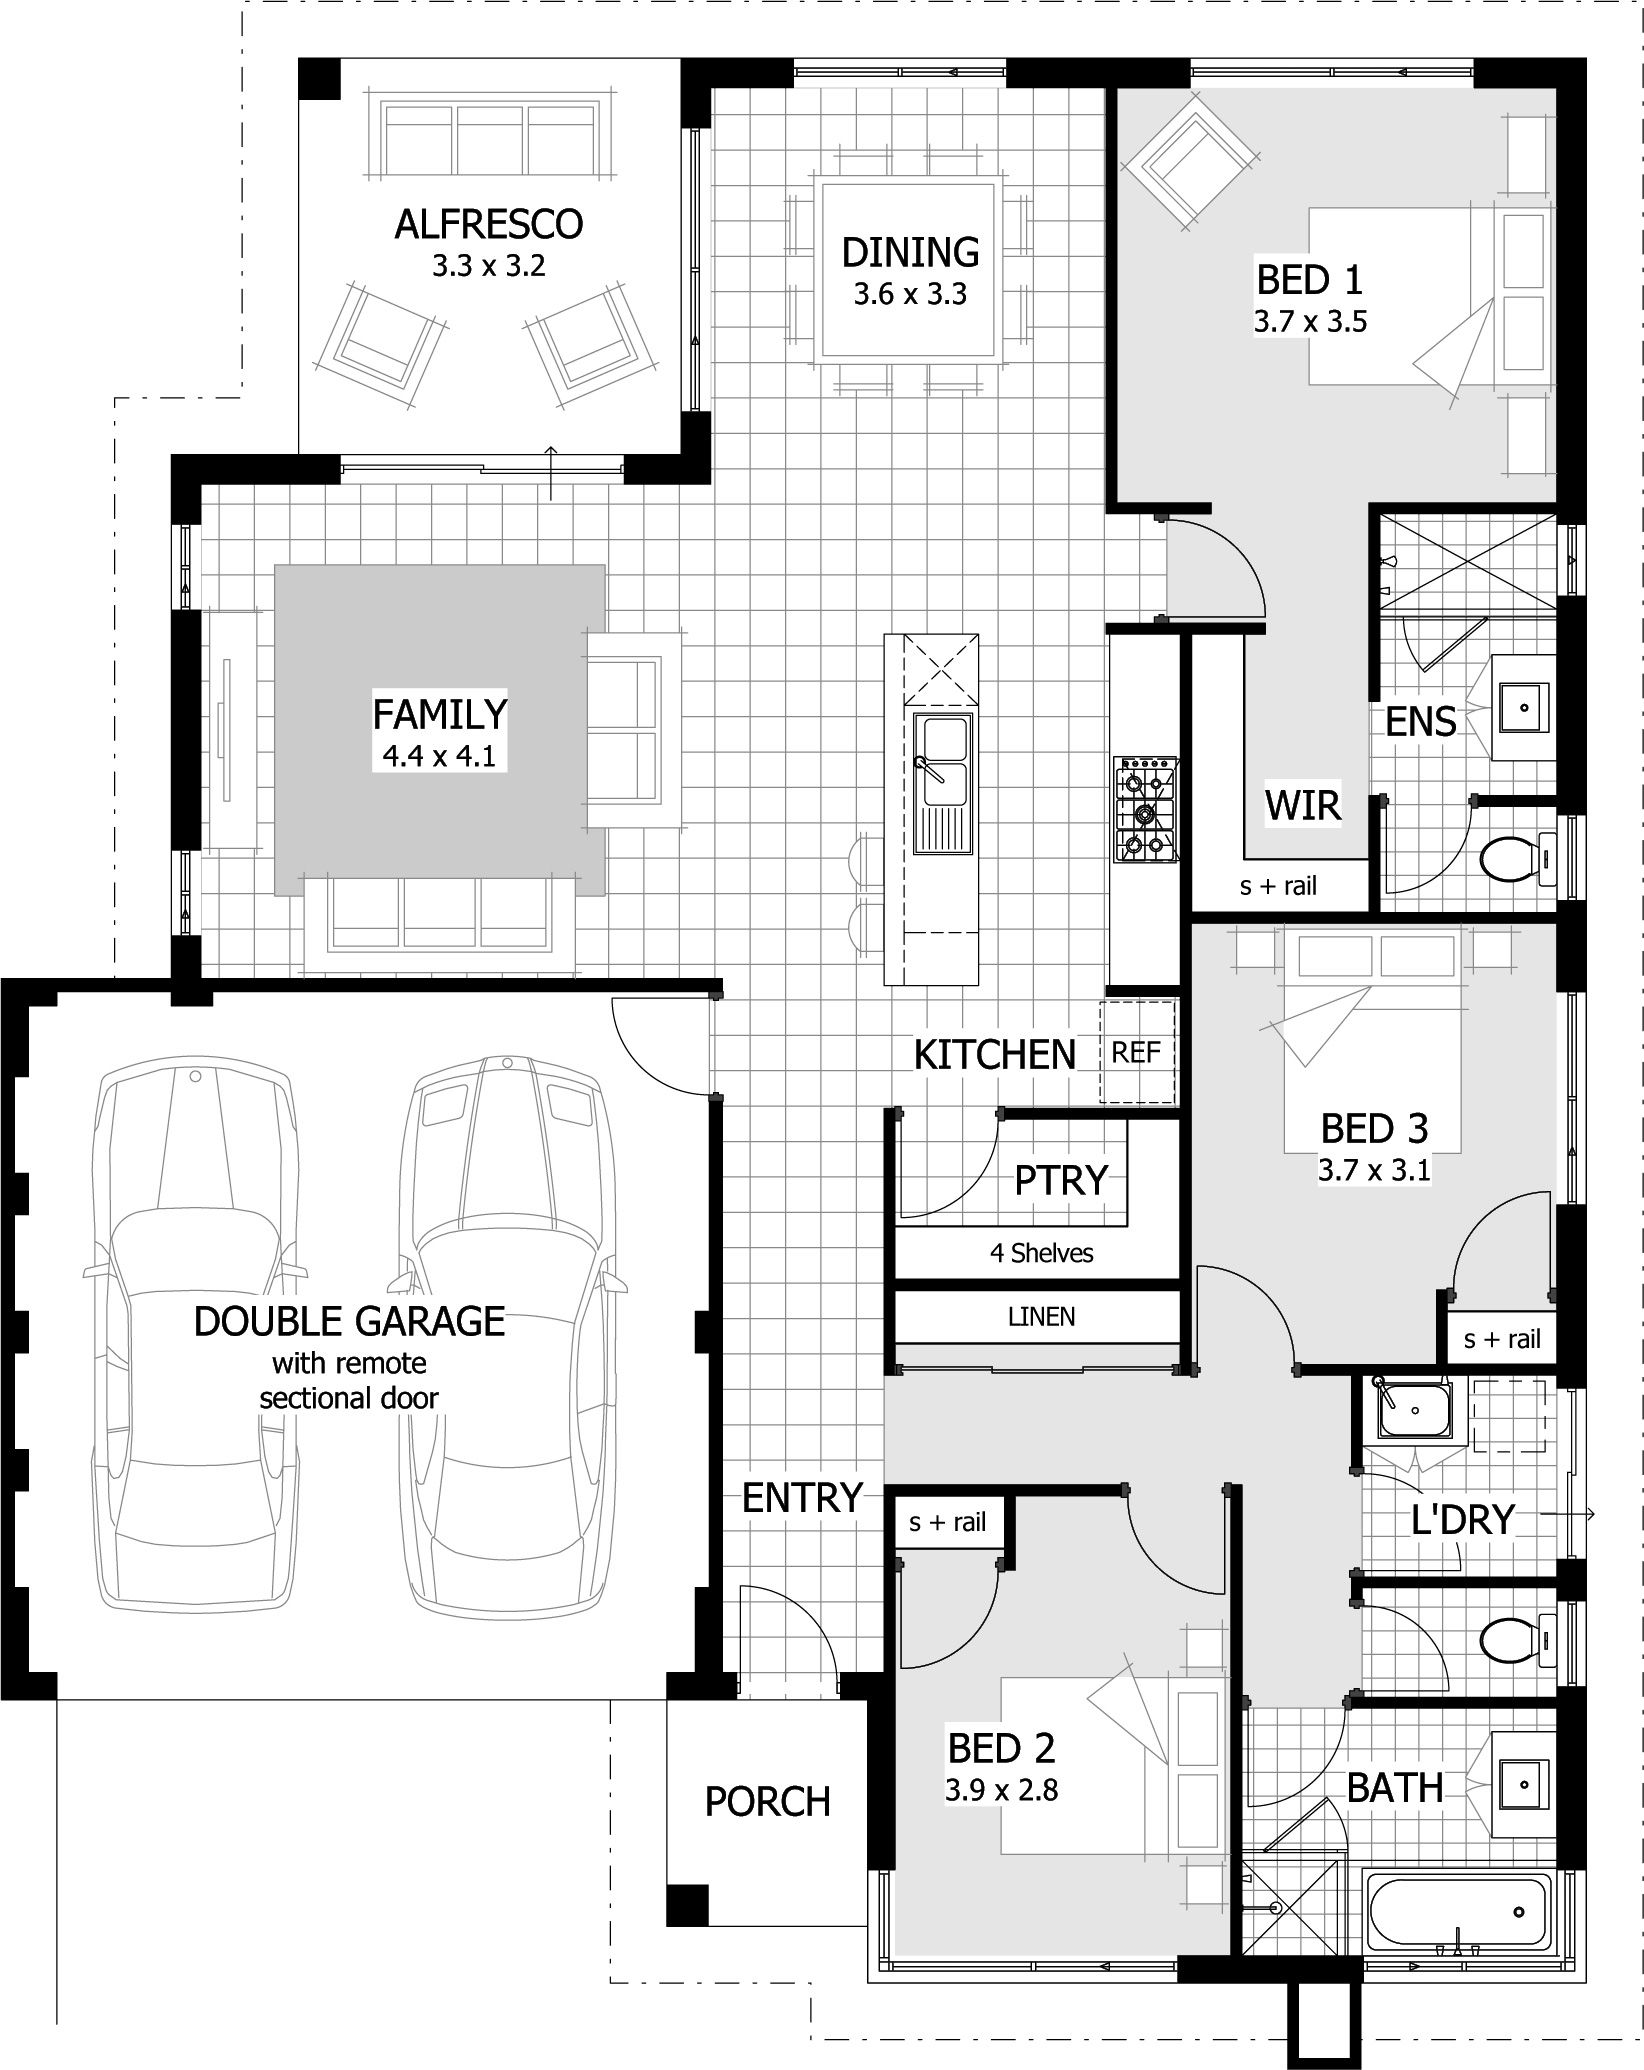 Find A 3 Bedroom Home That's Right For Your From Our Current Range